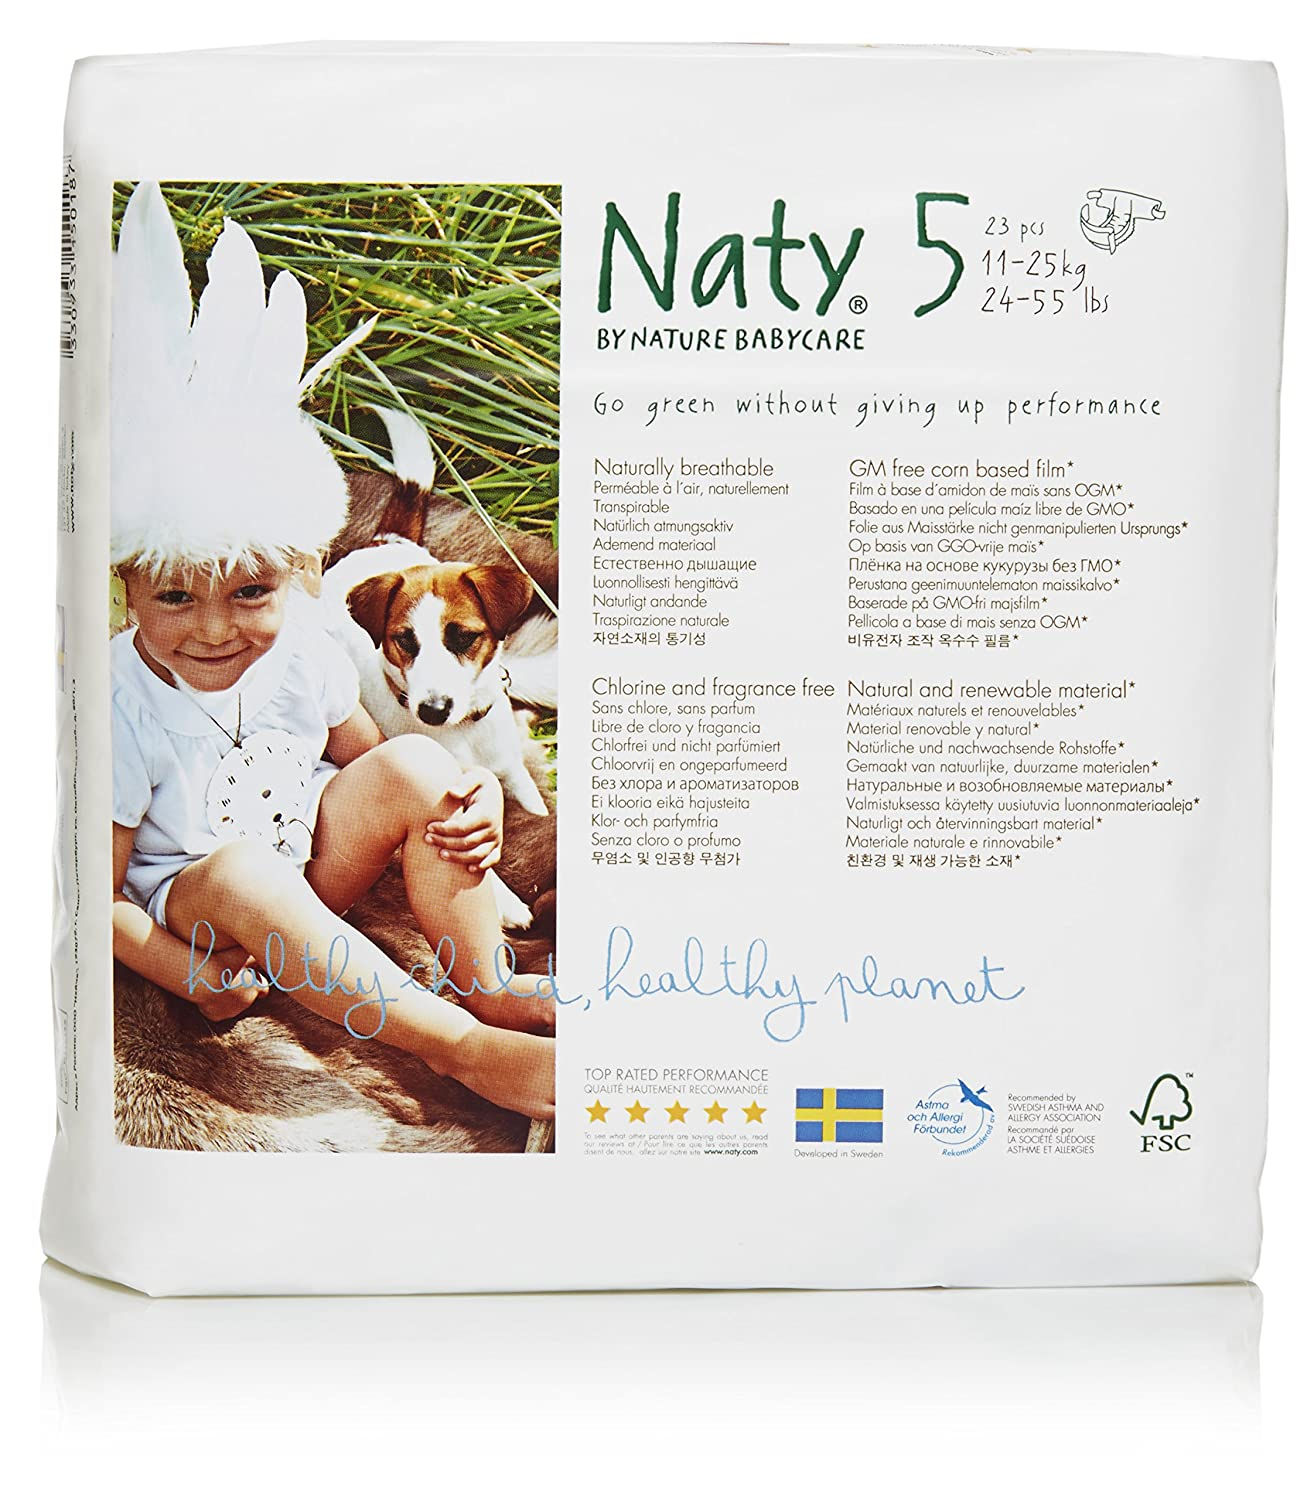 Naty by Nature Babycare Eco-Friendly Premium Disposable Diapers for Sensitive Skin, Size 2, 4 packs of 34 (136 Count) (Chemical, chlorine, perfume free) Naty SE Canada 244176